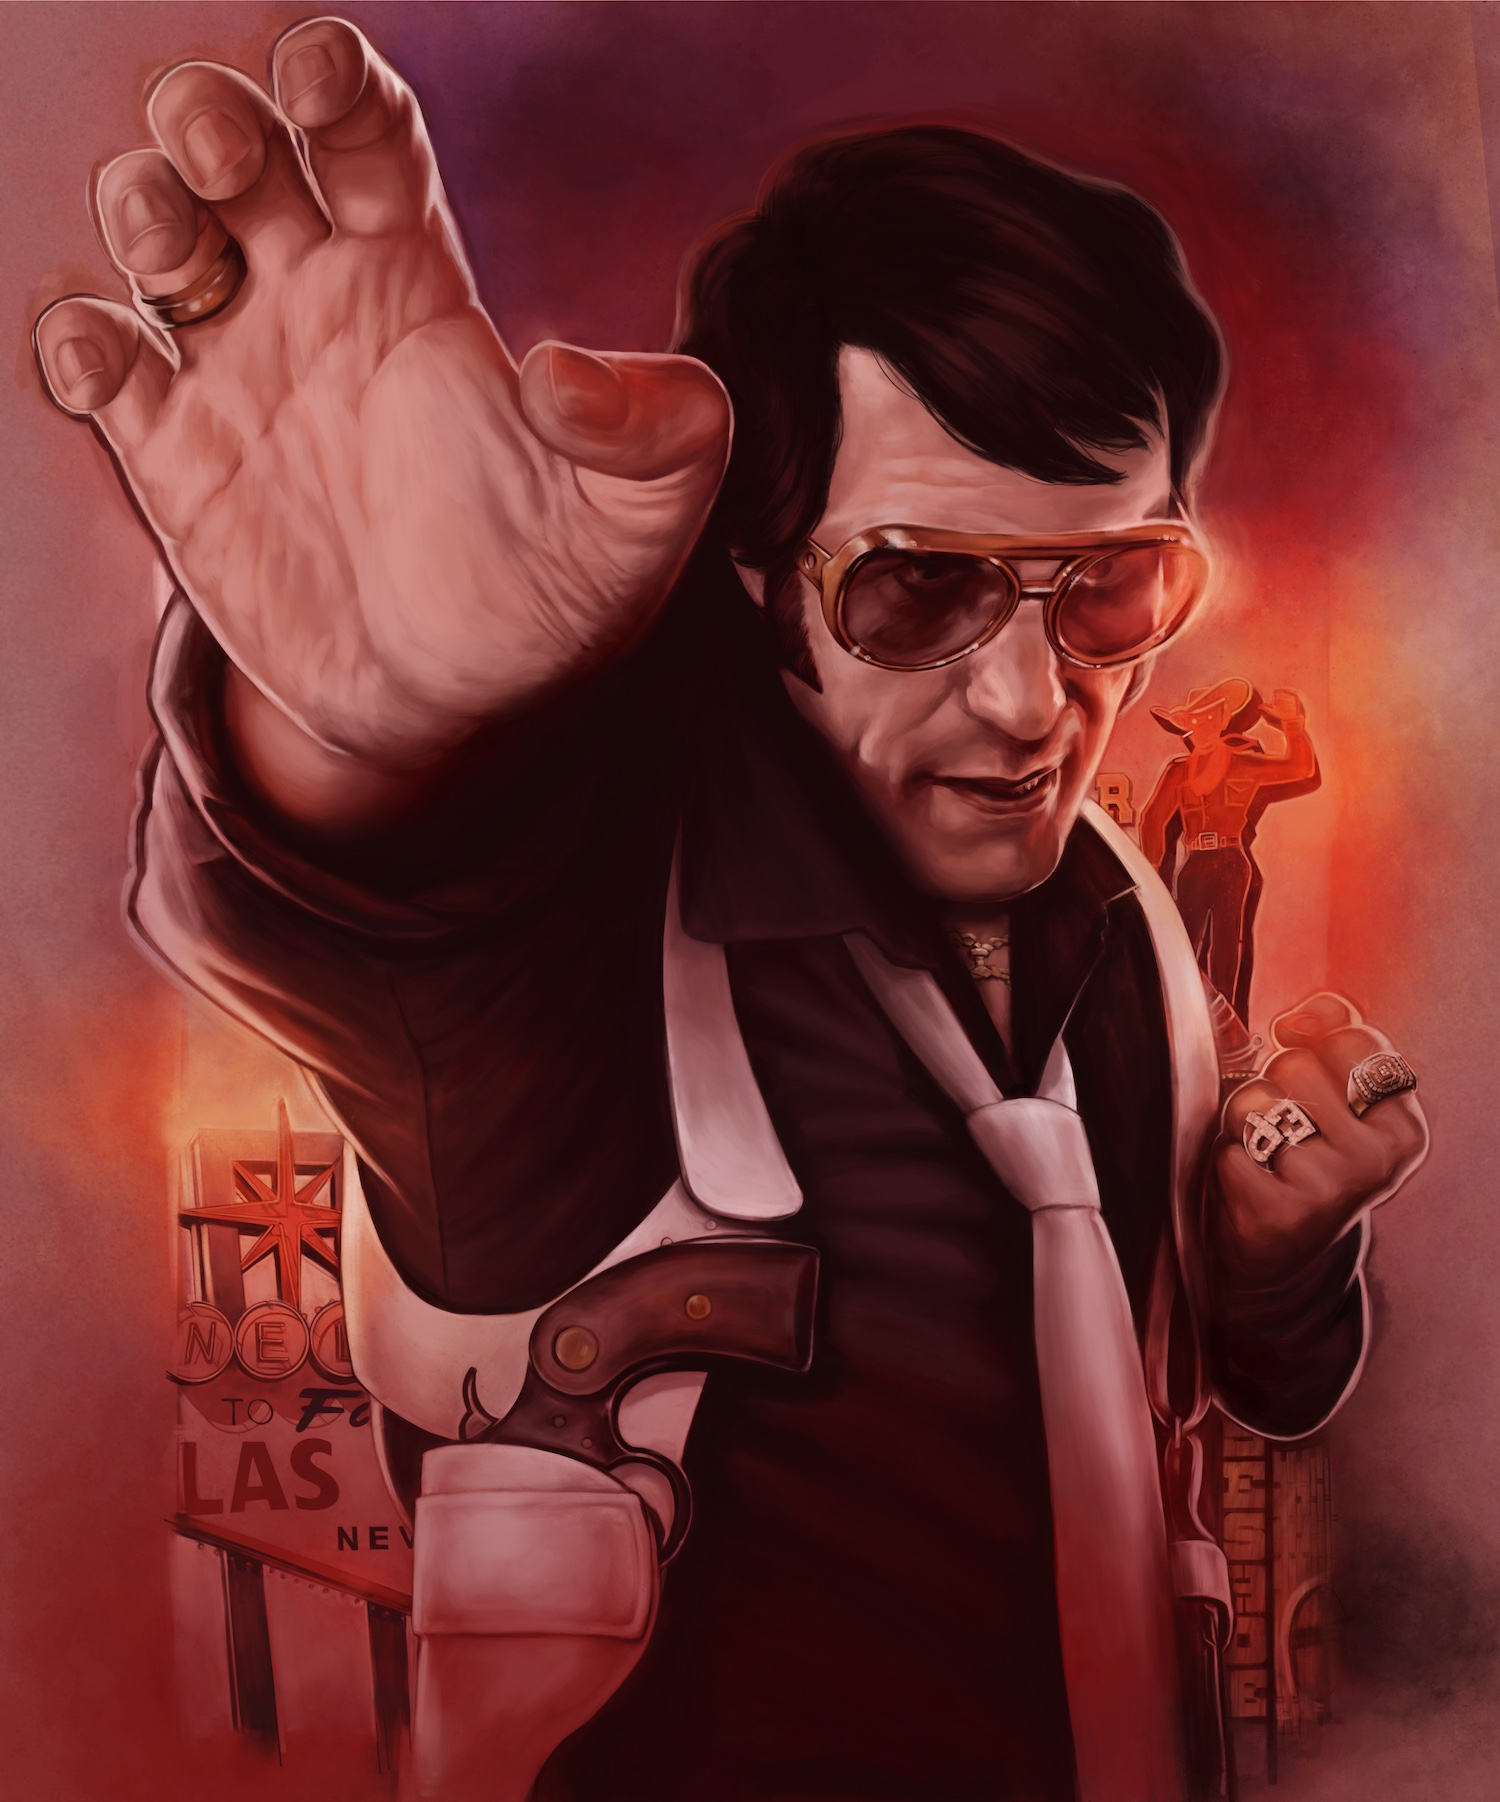 Promo poster artwork for and Elvis Kung Fu short